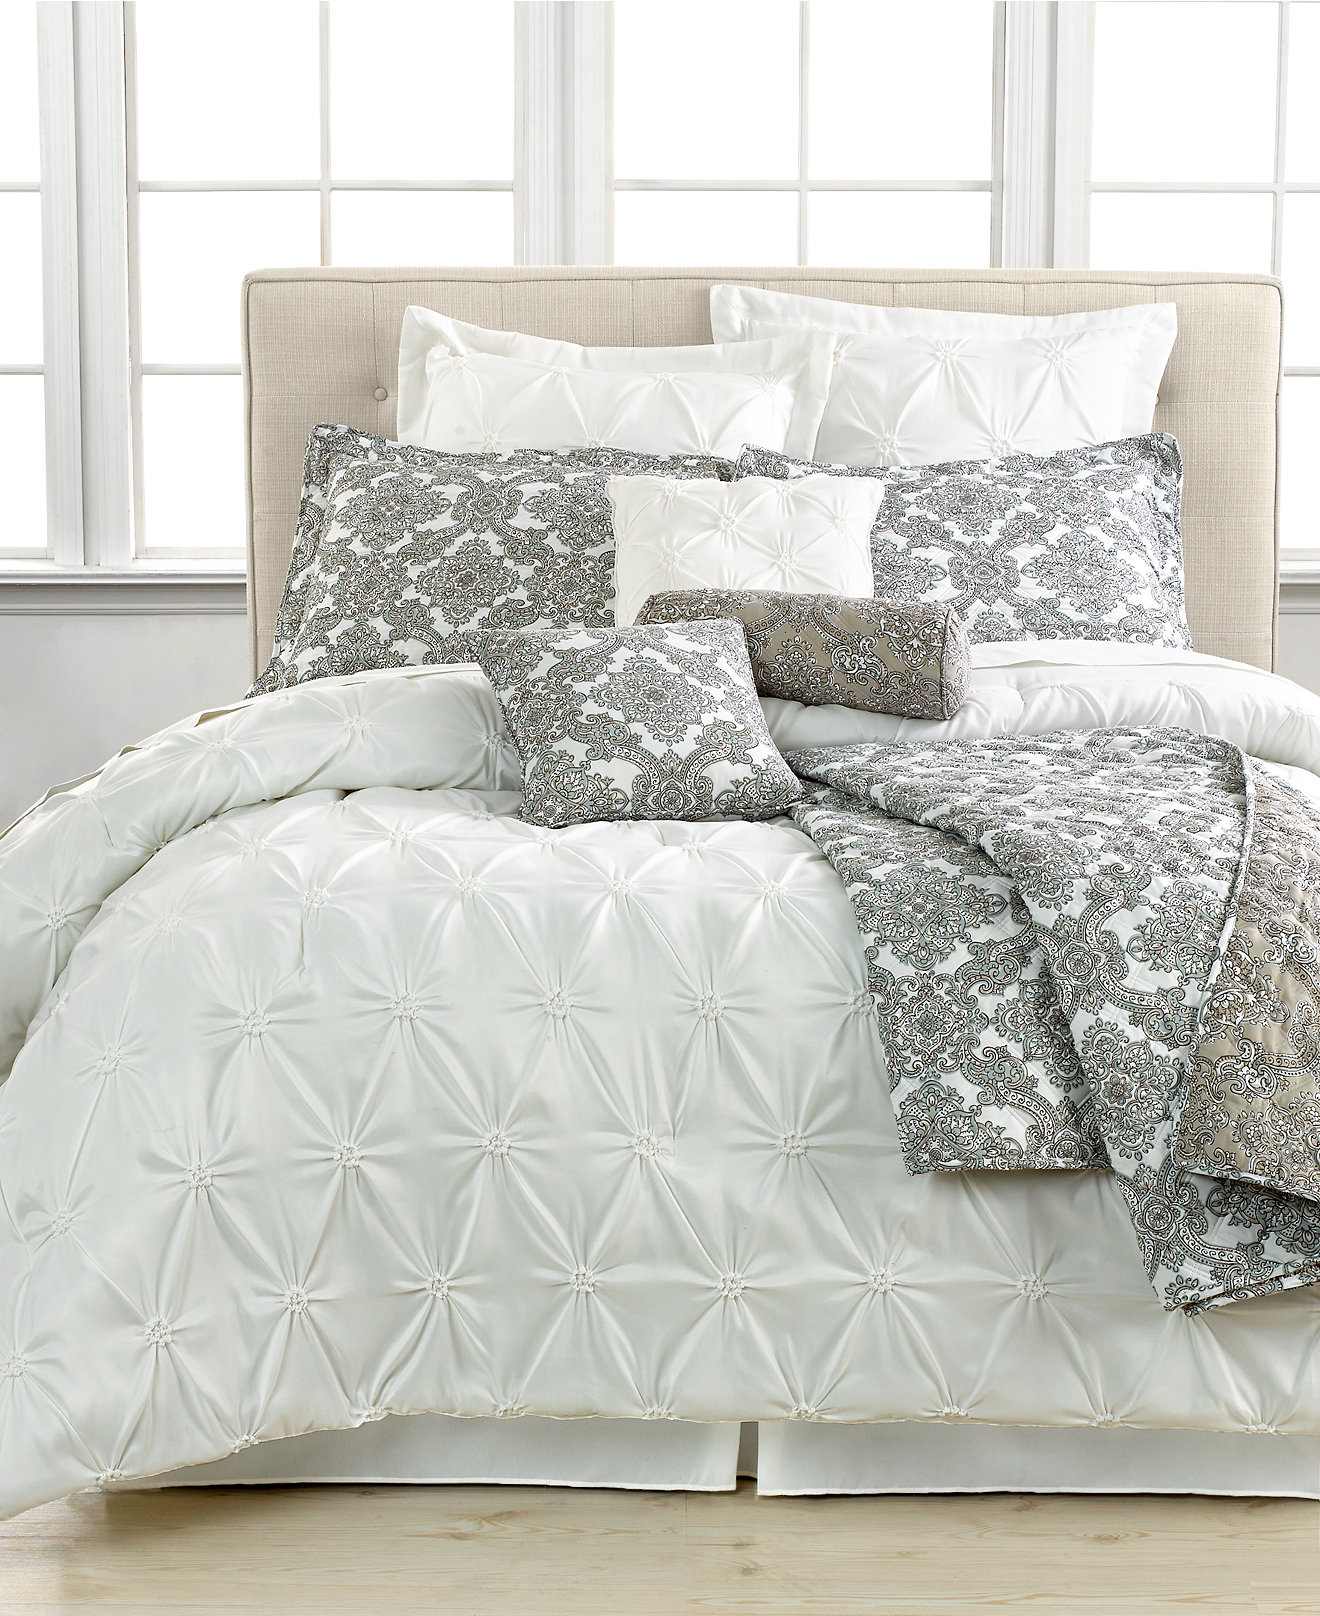 Inspiring white comforter sets for charming bedroom ideas with white comforter sets queen